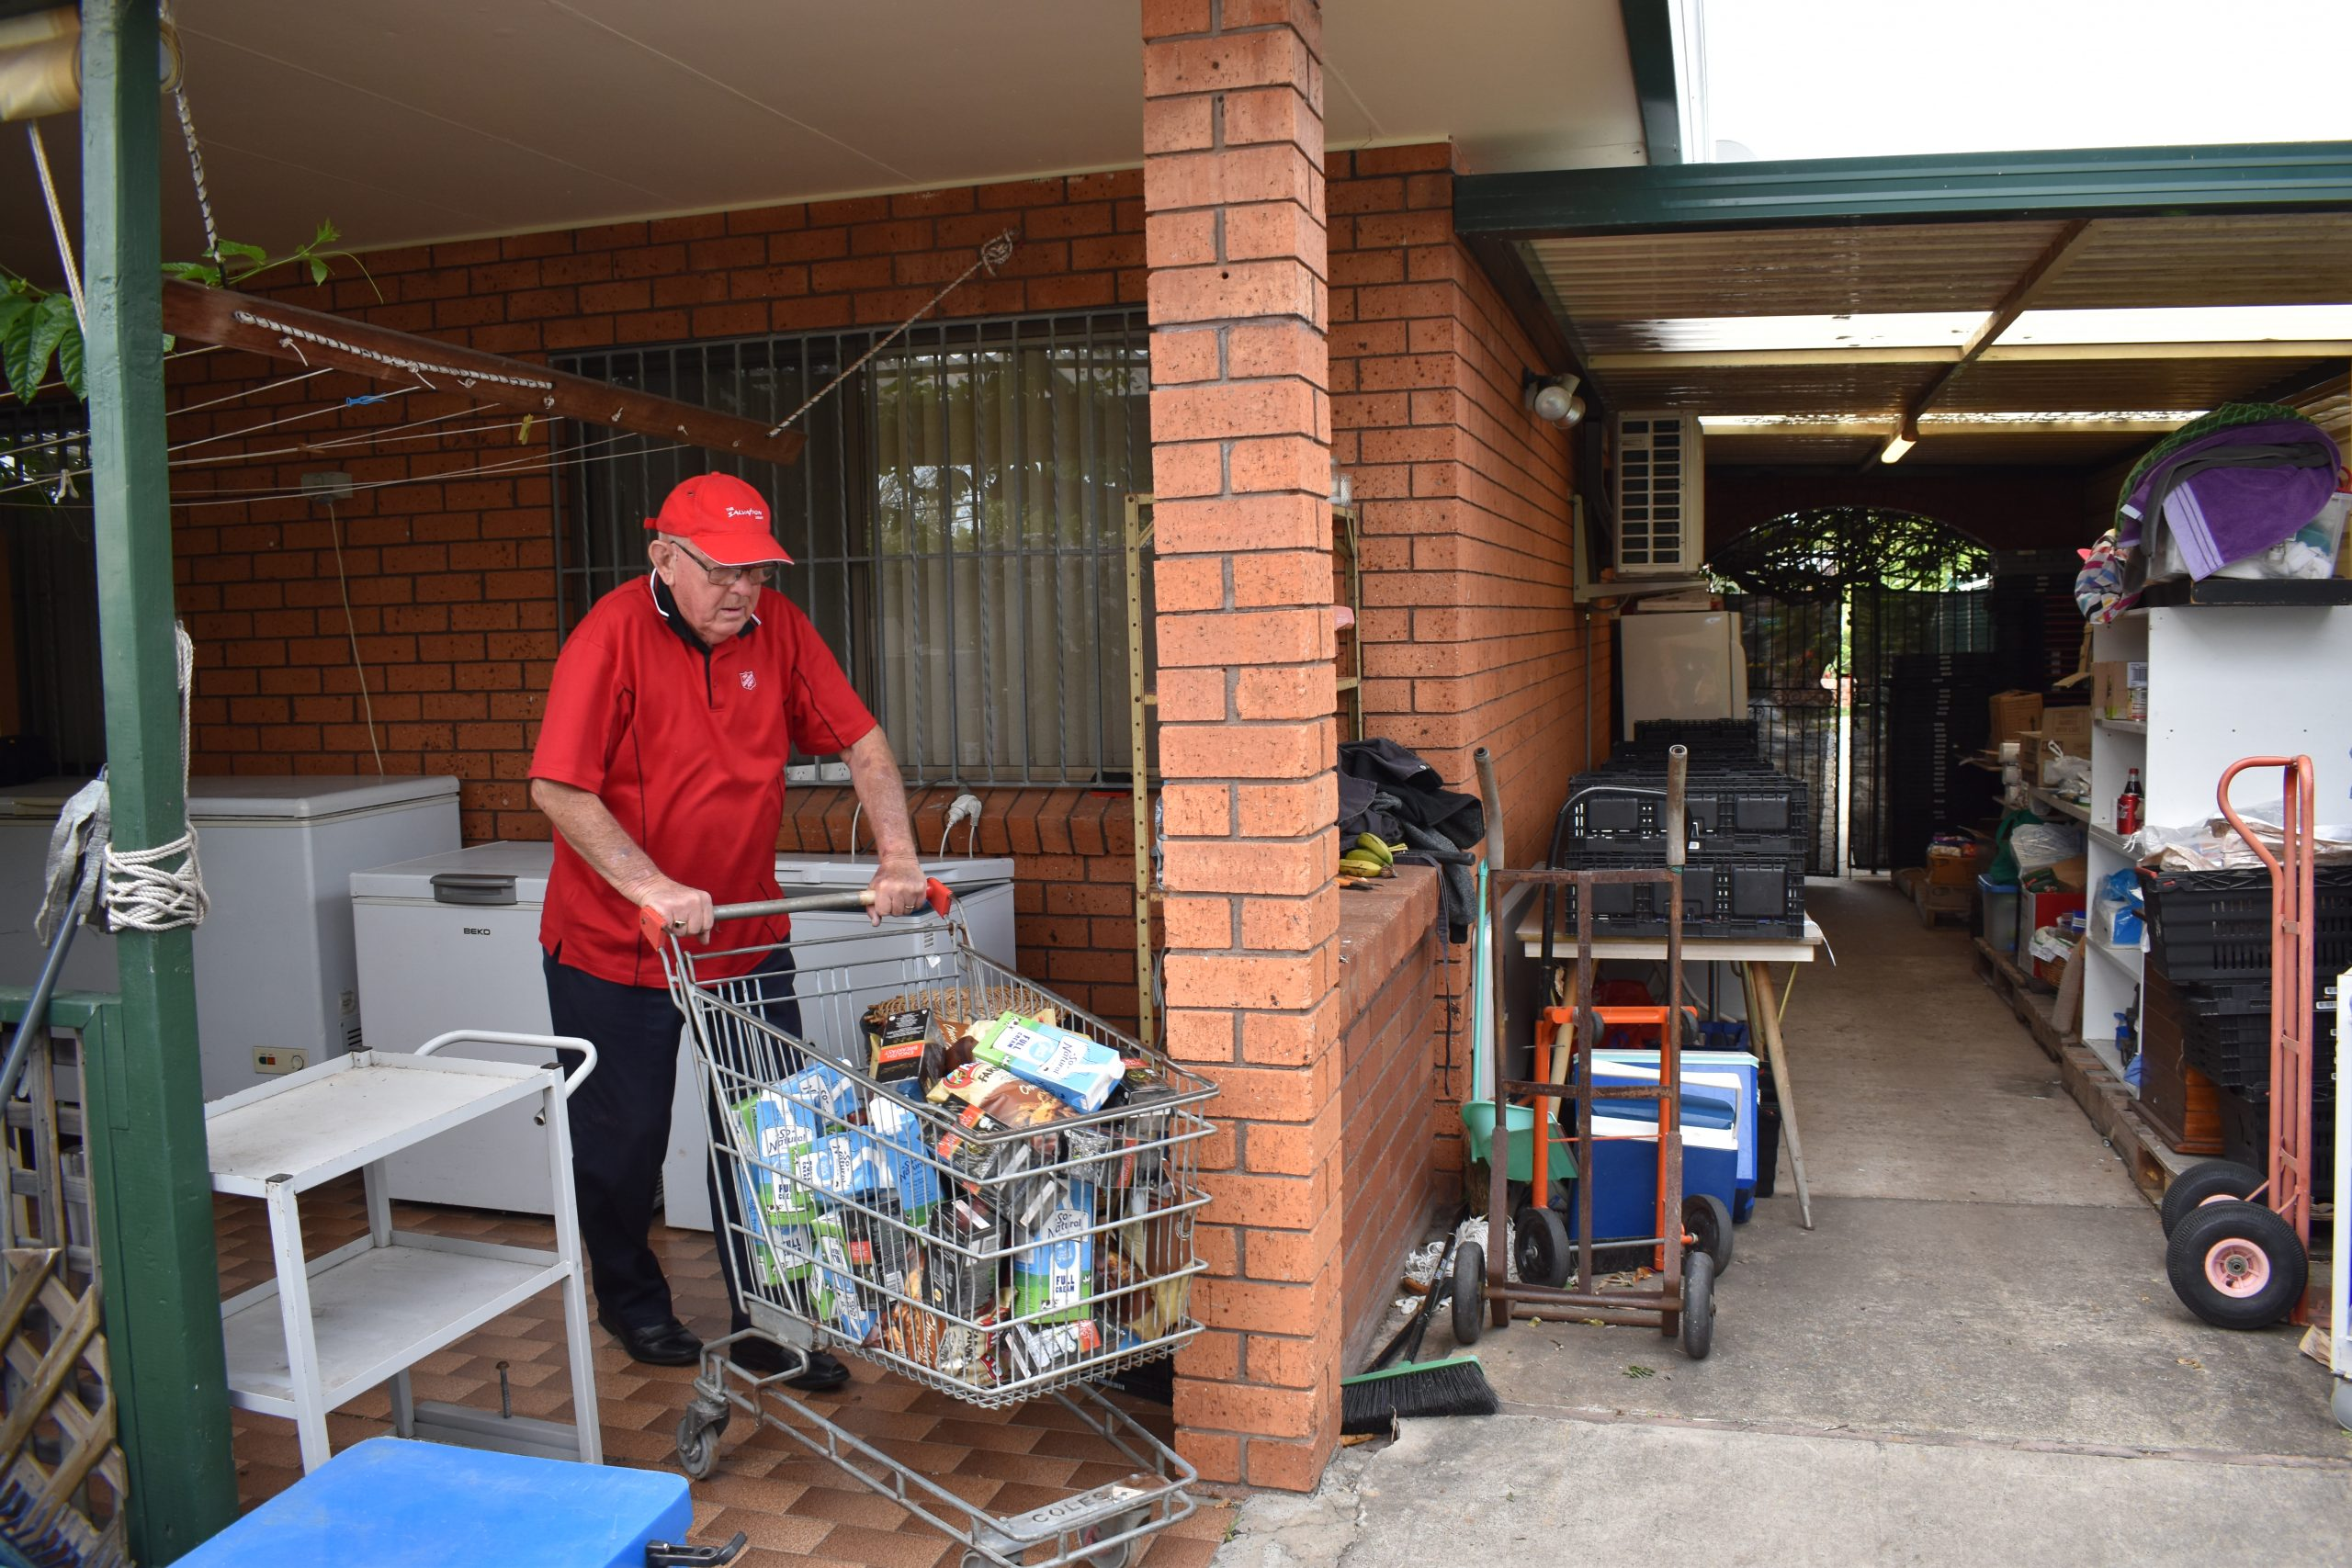 Man with a shopping trolley full of food